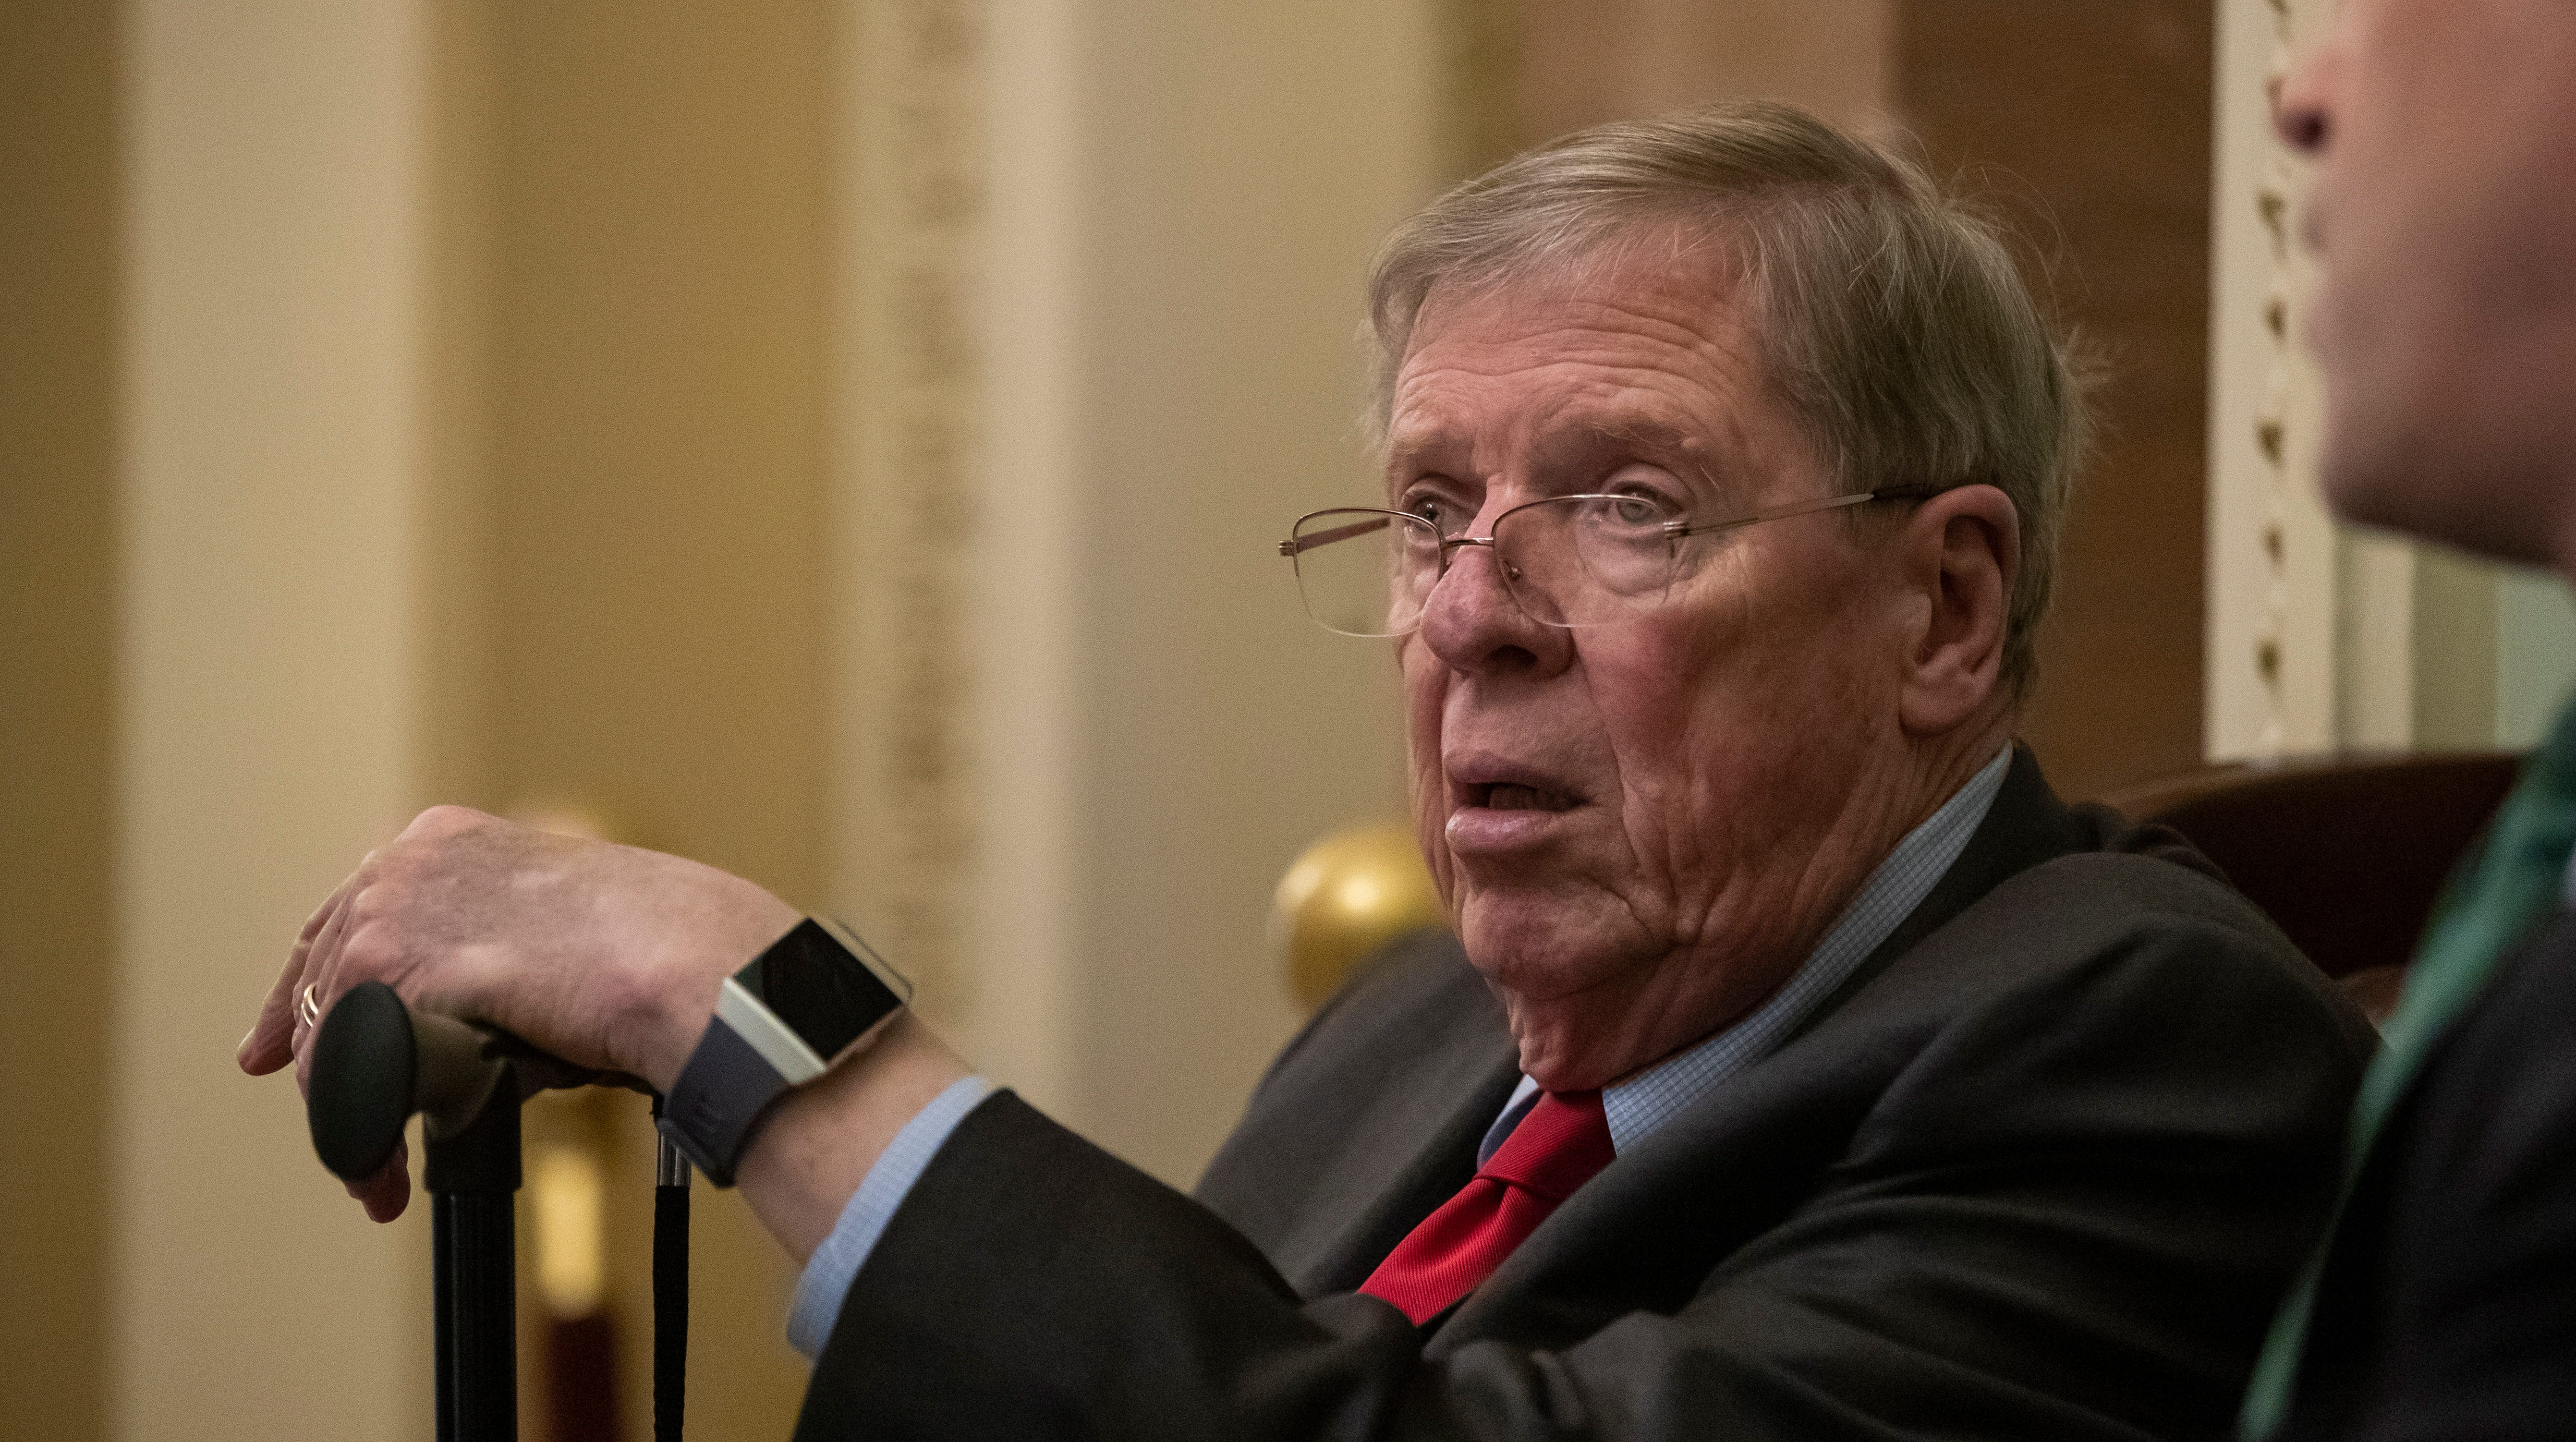 """Republican Senator from Georgia Johnny Isakson outside the Senate floor at the US Capitol in February 2019. Isakson told The Bulwark that President Donald Trump is to get a """"whipping"""" over comments he made about the late Sen. John McCain."""